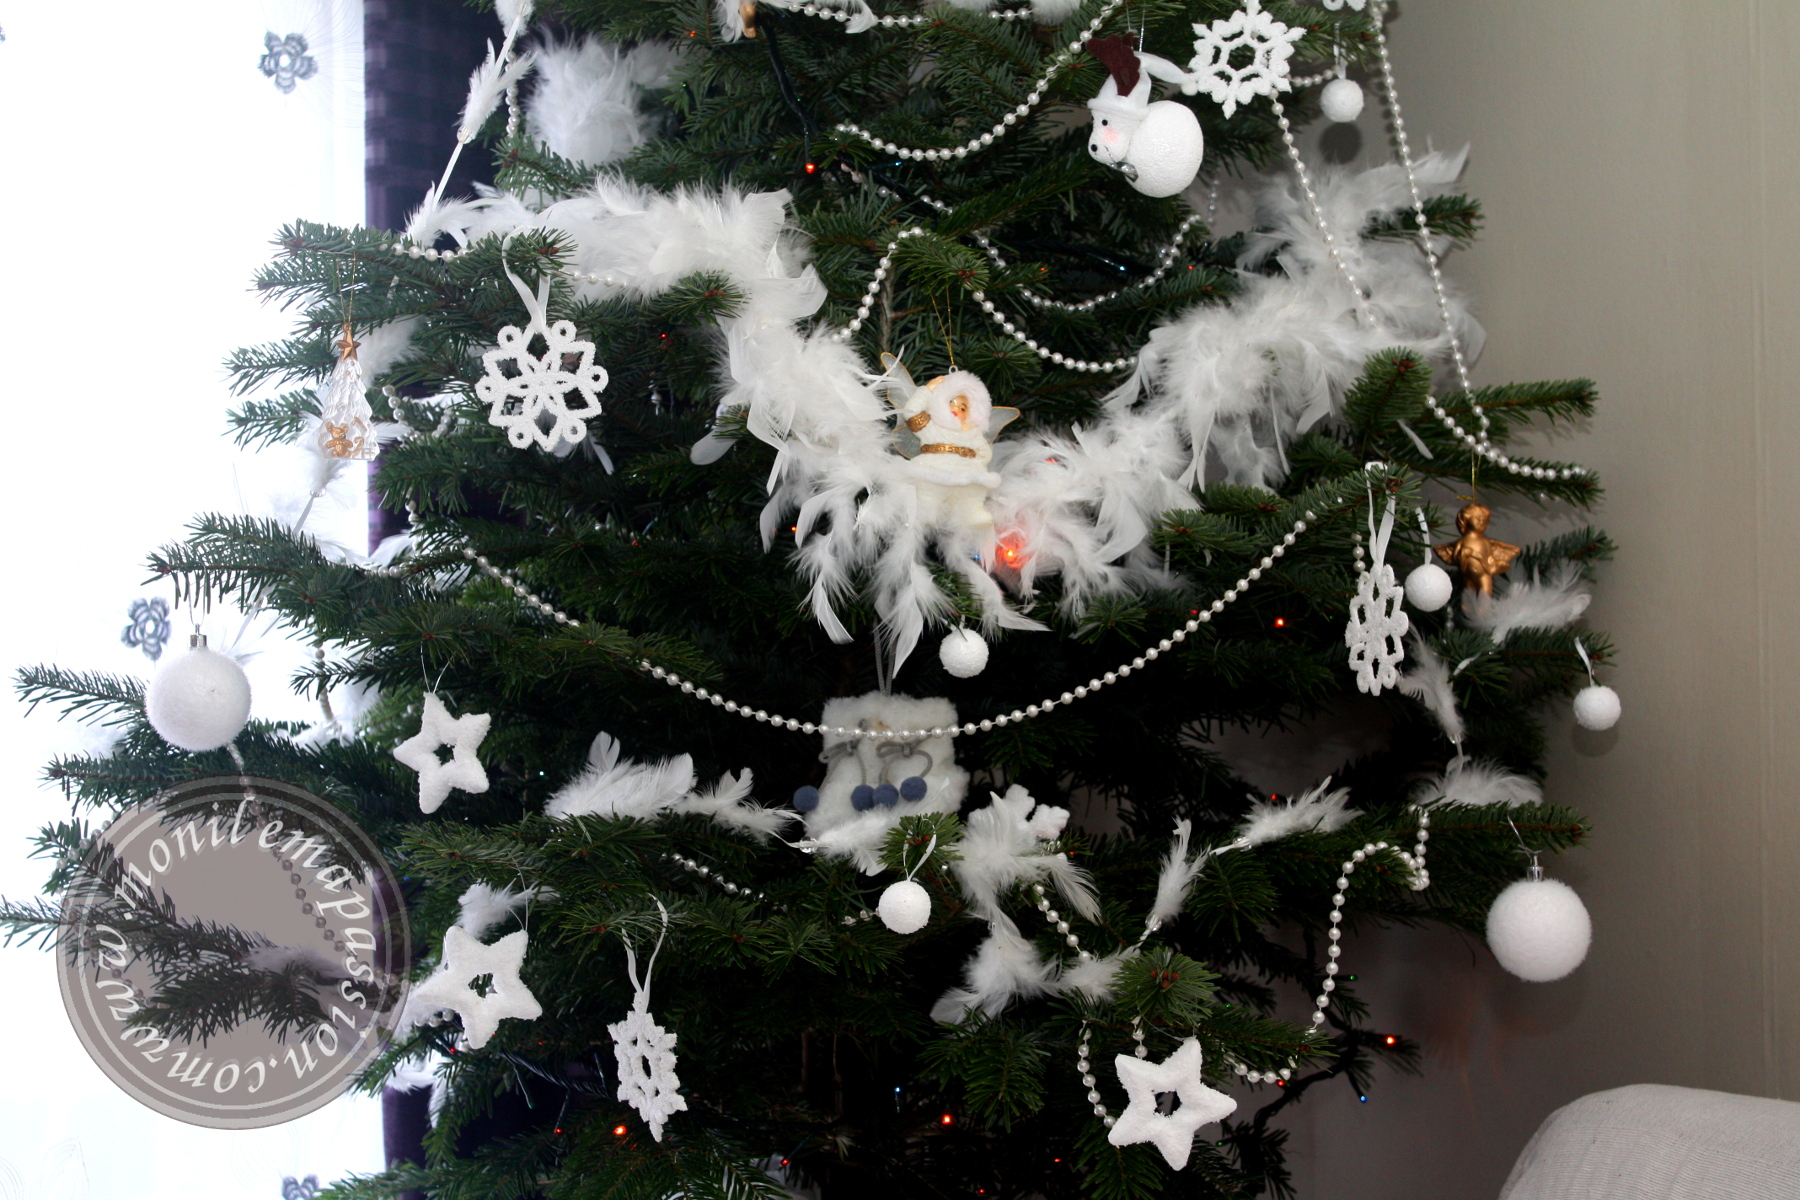 Sapin de Noël 2015 – 2015 Christmas Tree